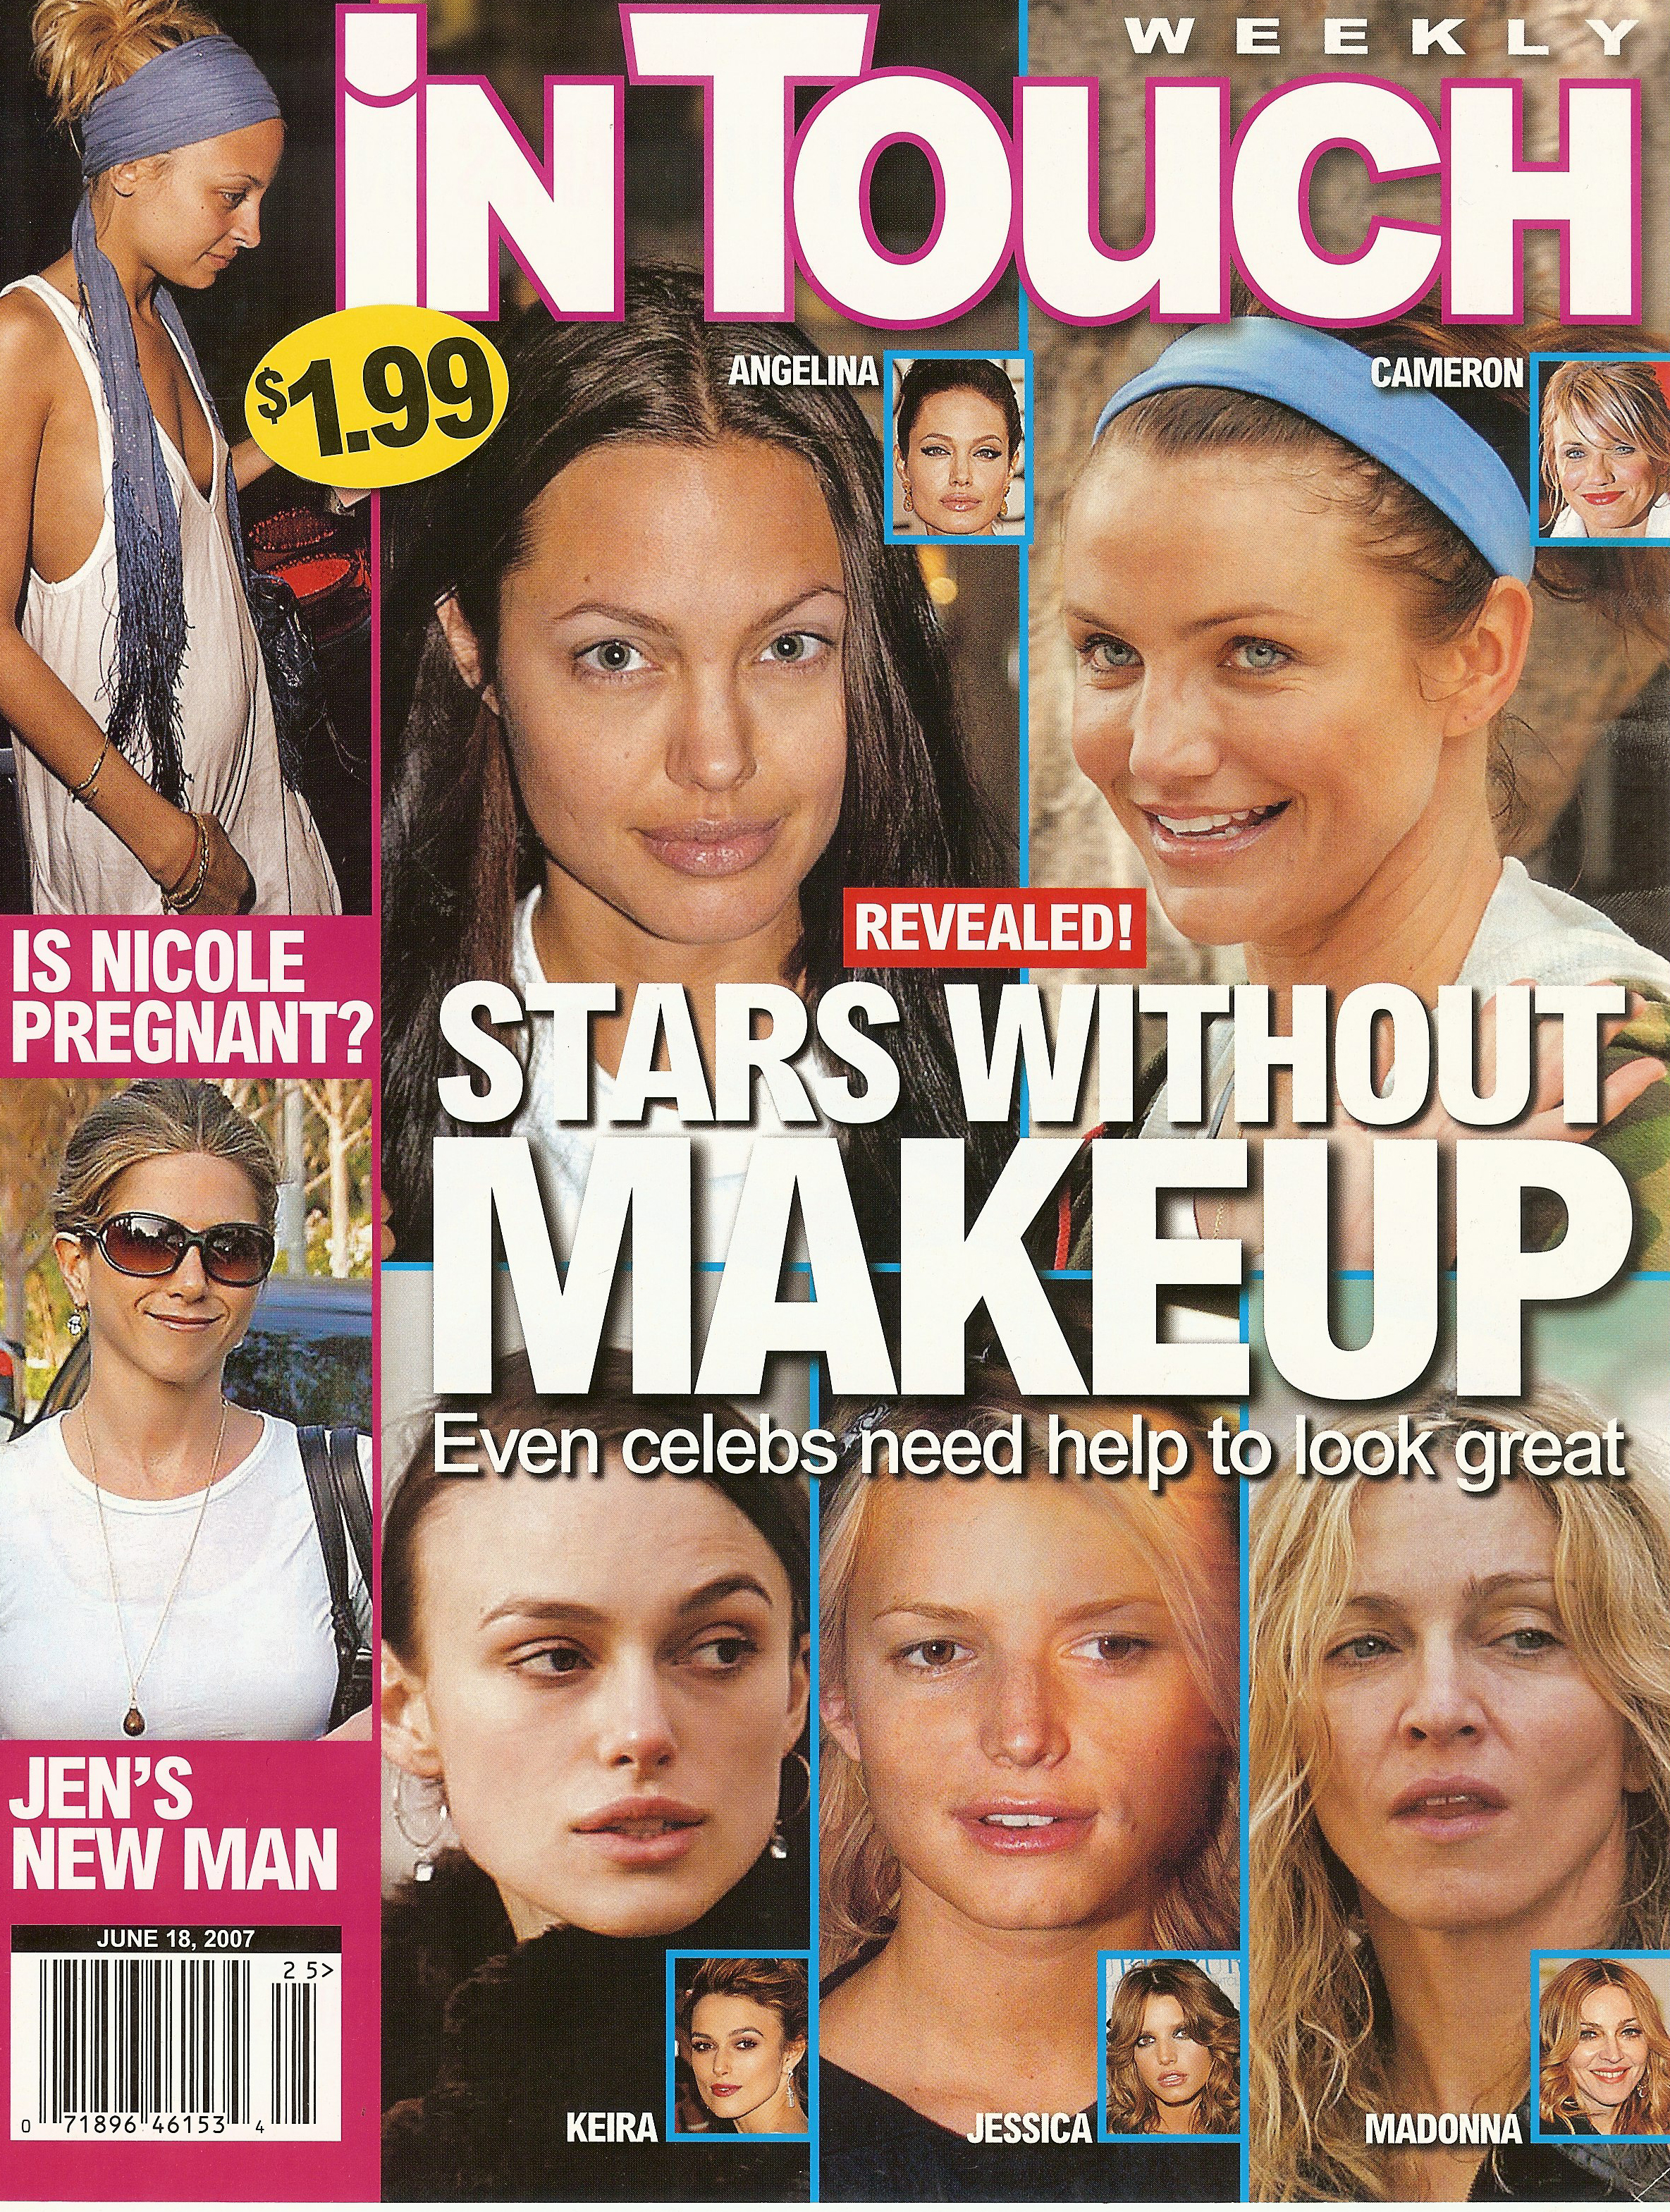 IN TOUCH WEEKLY JUNE 18 2007 COVER.jpg